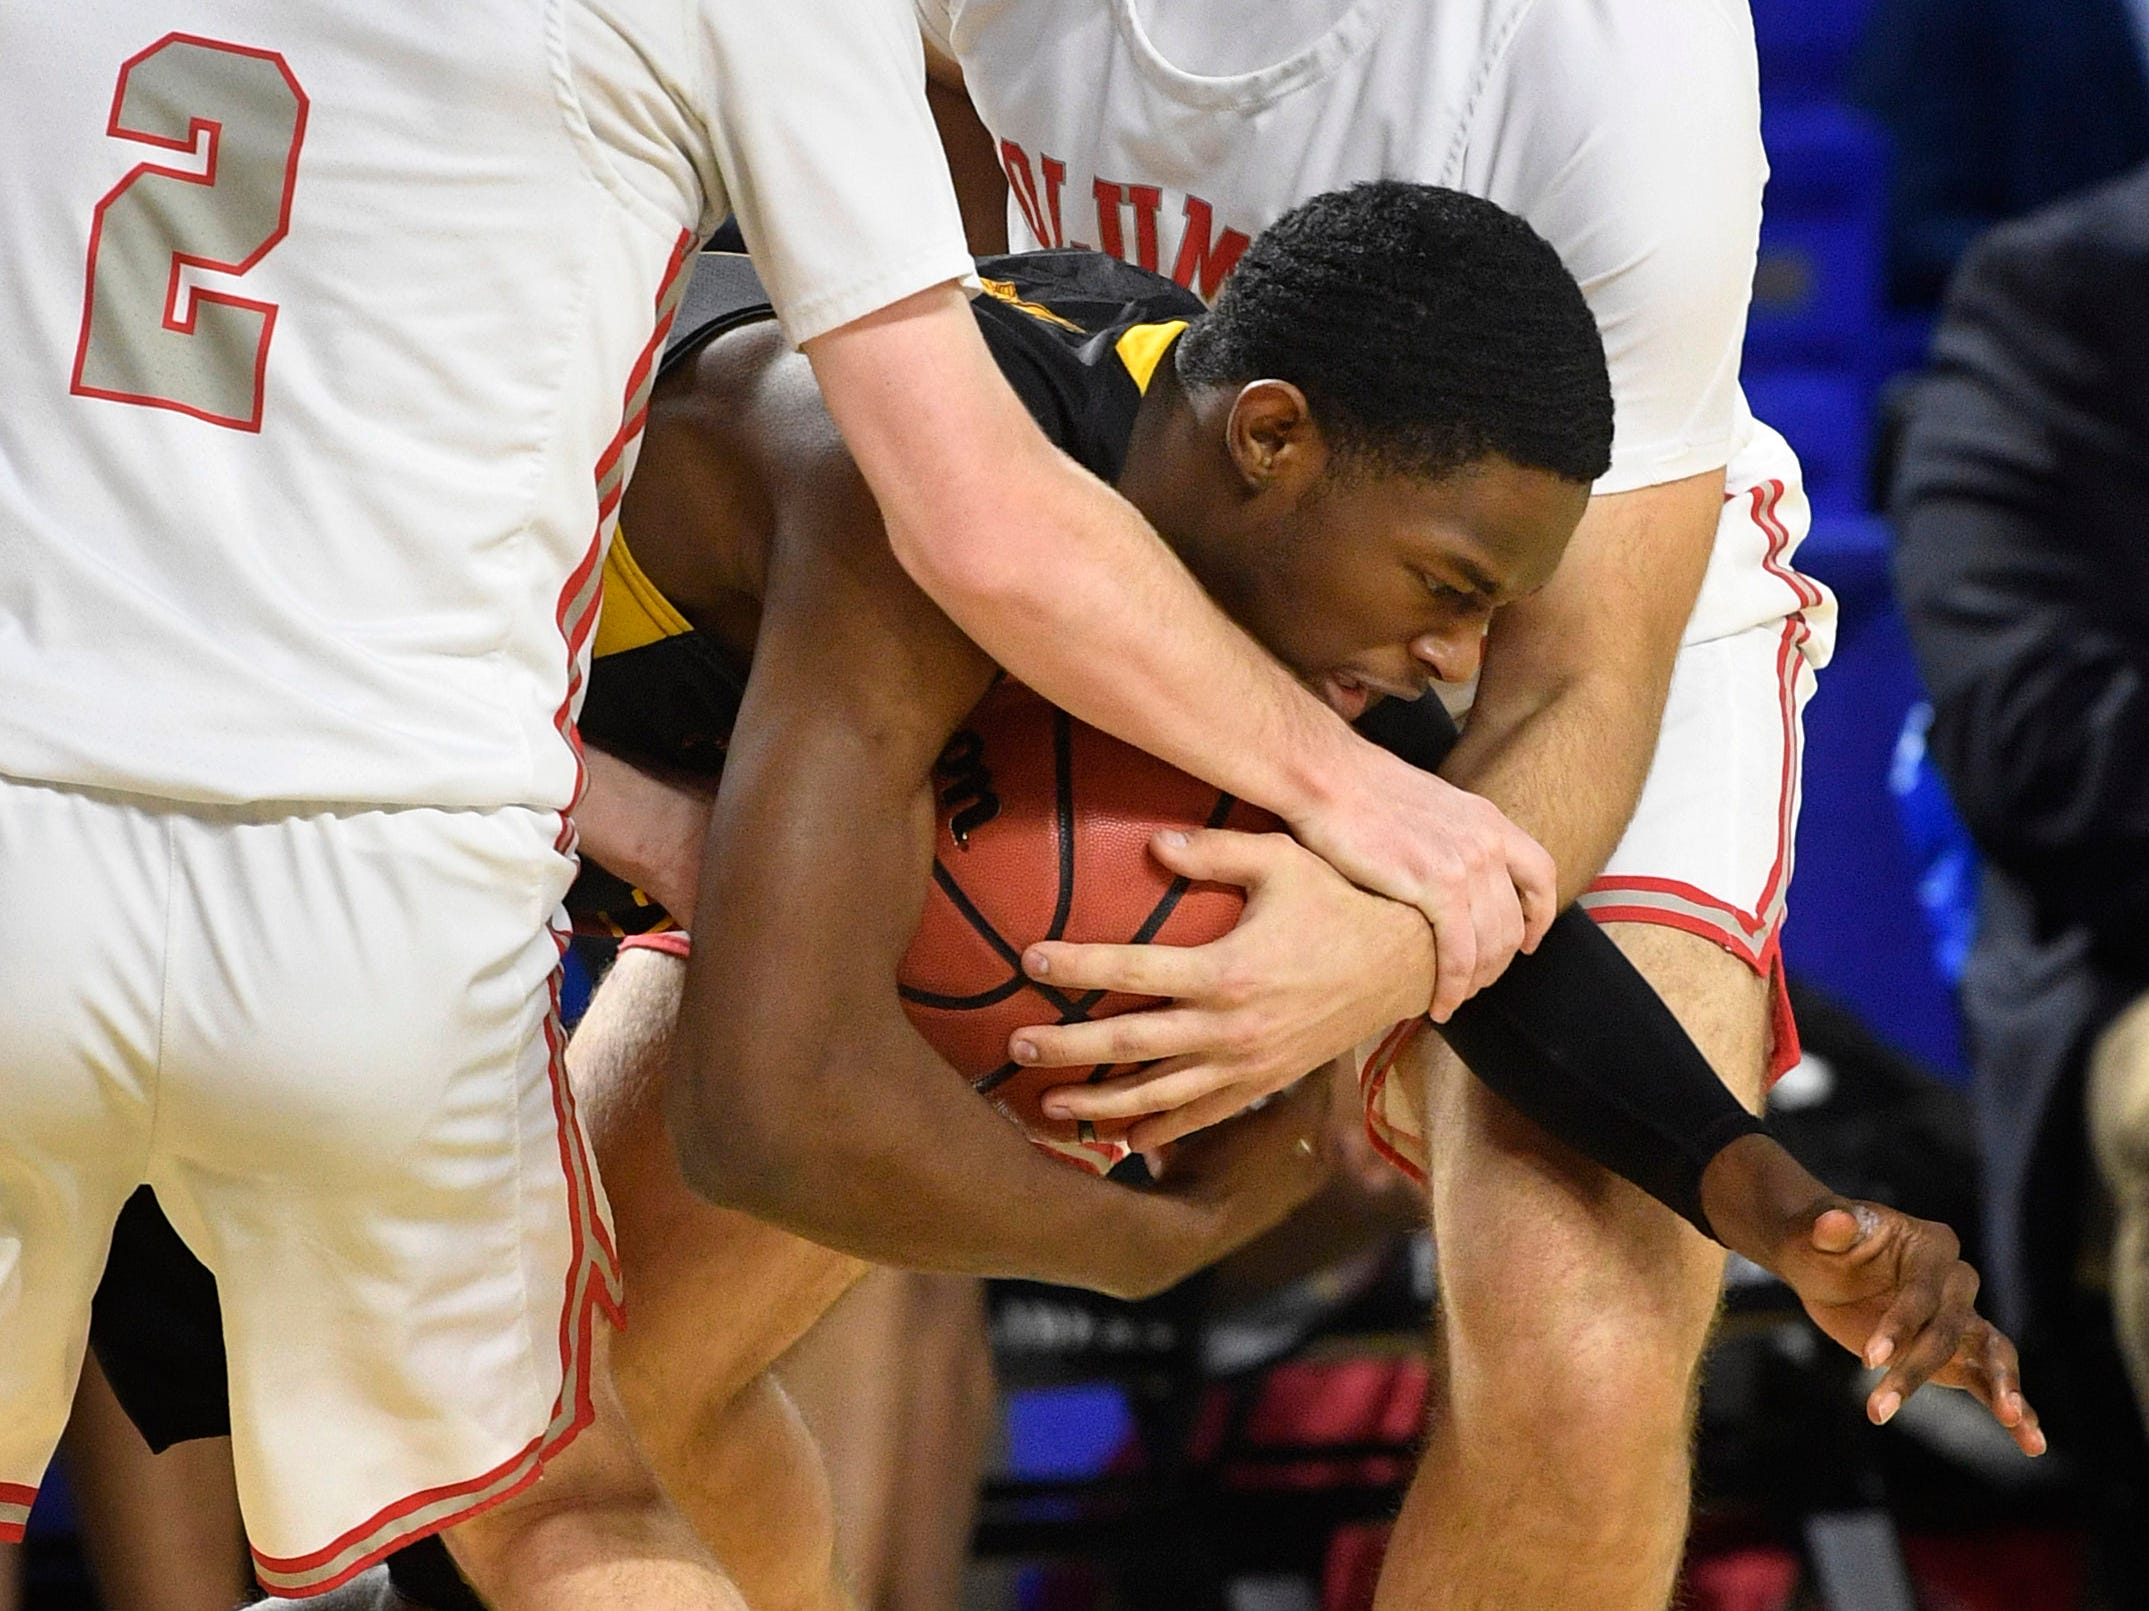 Humboldt's Ronald Abernathy (2) is squeezed by defenders as Columbia Academy plays Humboldt for the TSSAA Class A Championship  Saturday, March 16, 2019, in Murfreesboro, Tenn.